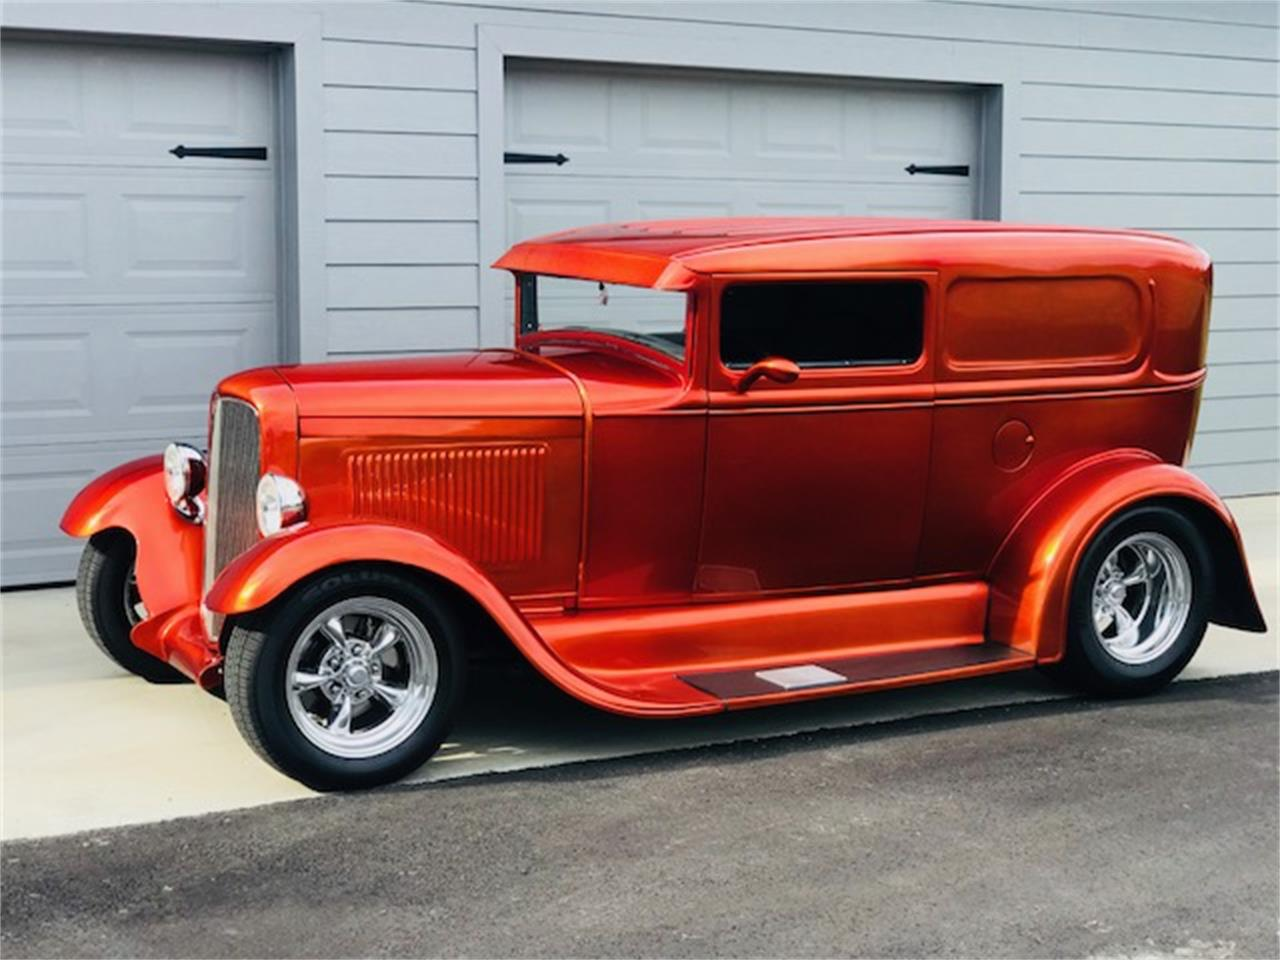 Large Picture of 1930 Ford Street Rod located in South Carolina - $39,995.00 Offered by a Private Seller - OB6L